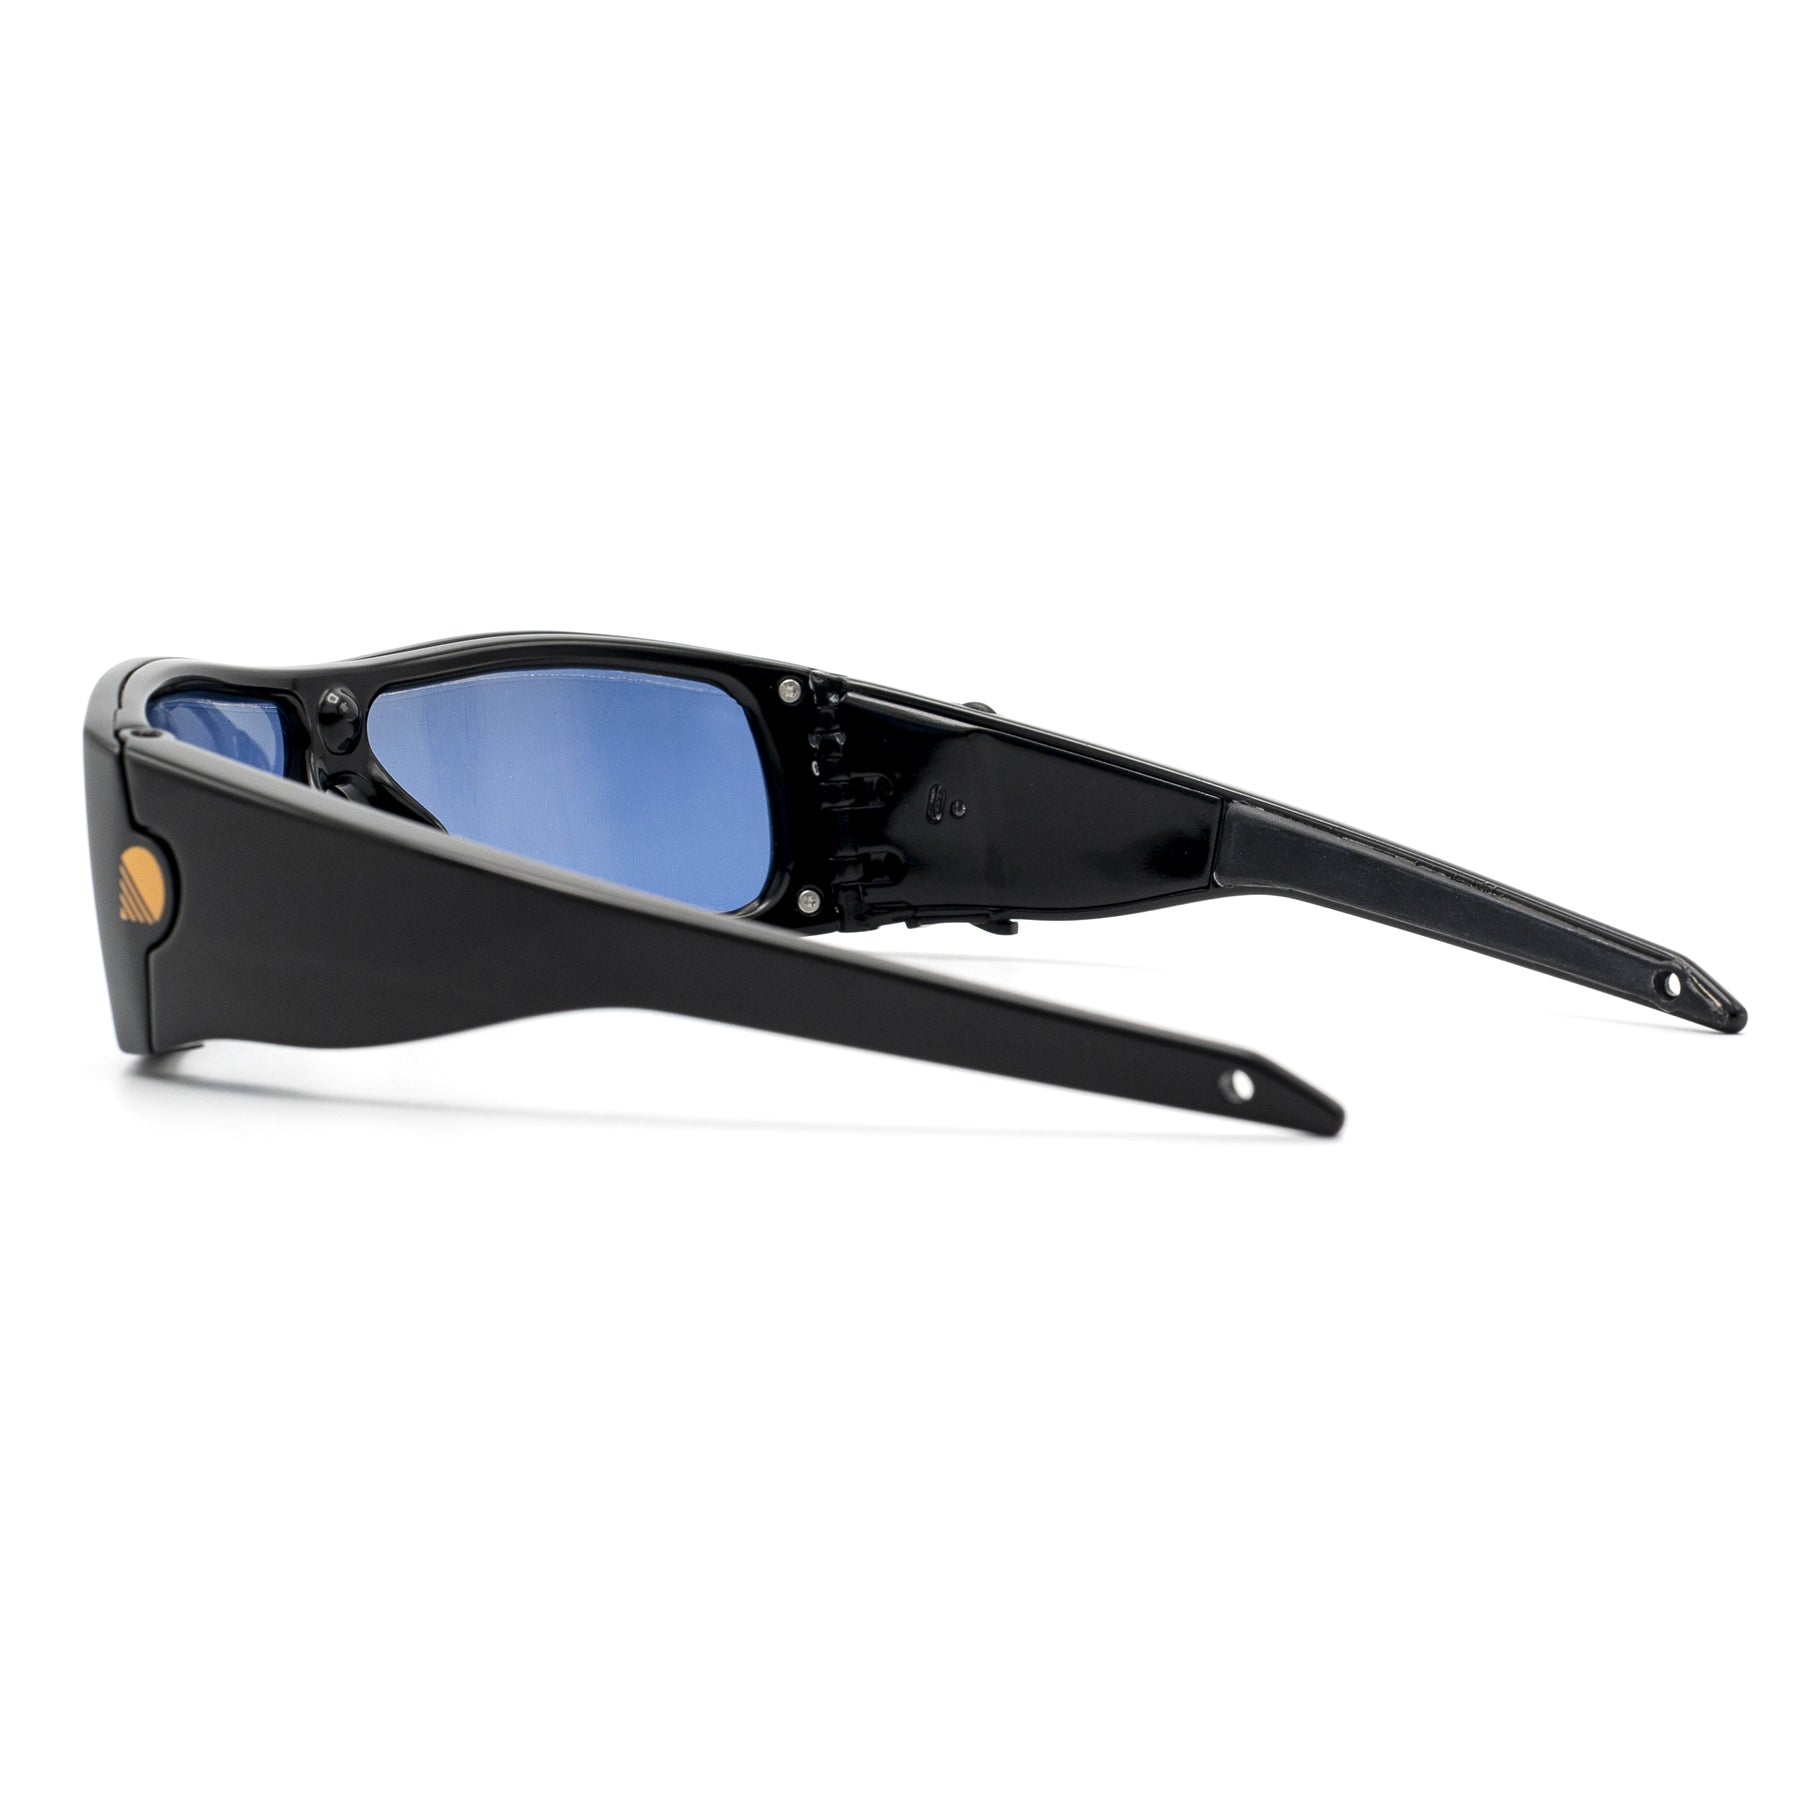 Fades Auto Dimming Cycling Sunglasses